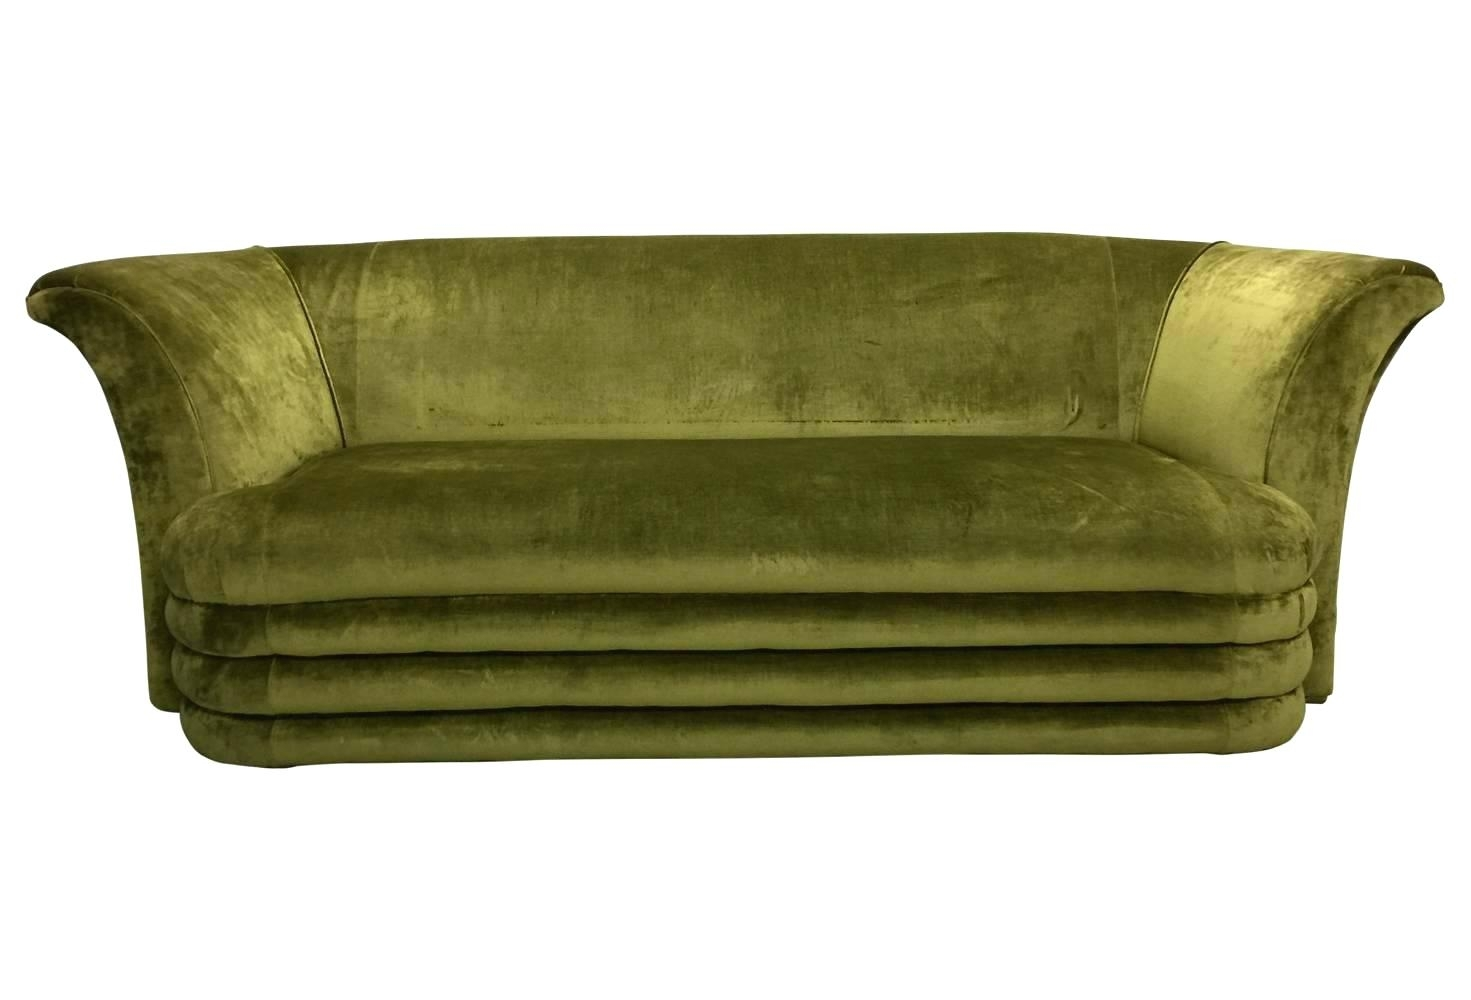 Modern Art Deco Furniture Mid Century Modern Art Inspired Chartreuse Intended For Art Deco Sofas (Image 8 of 10)